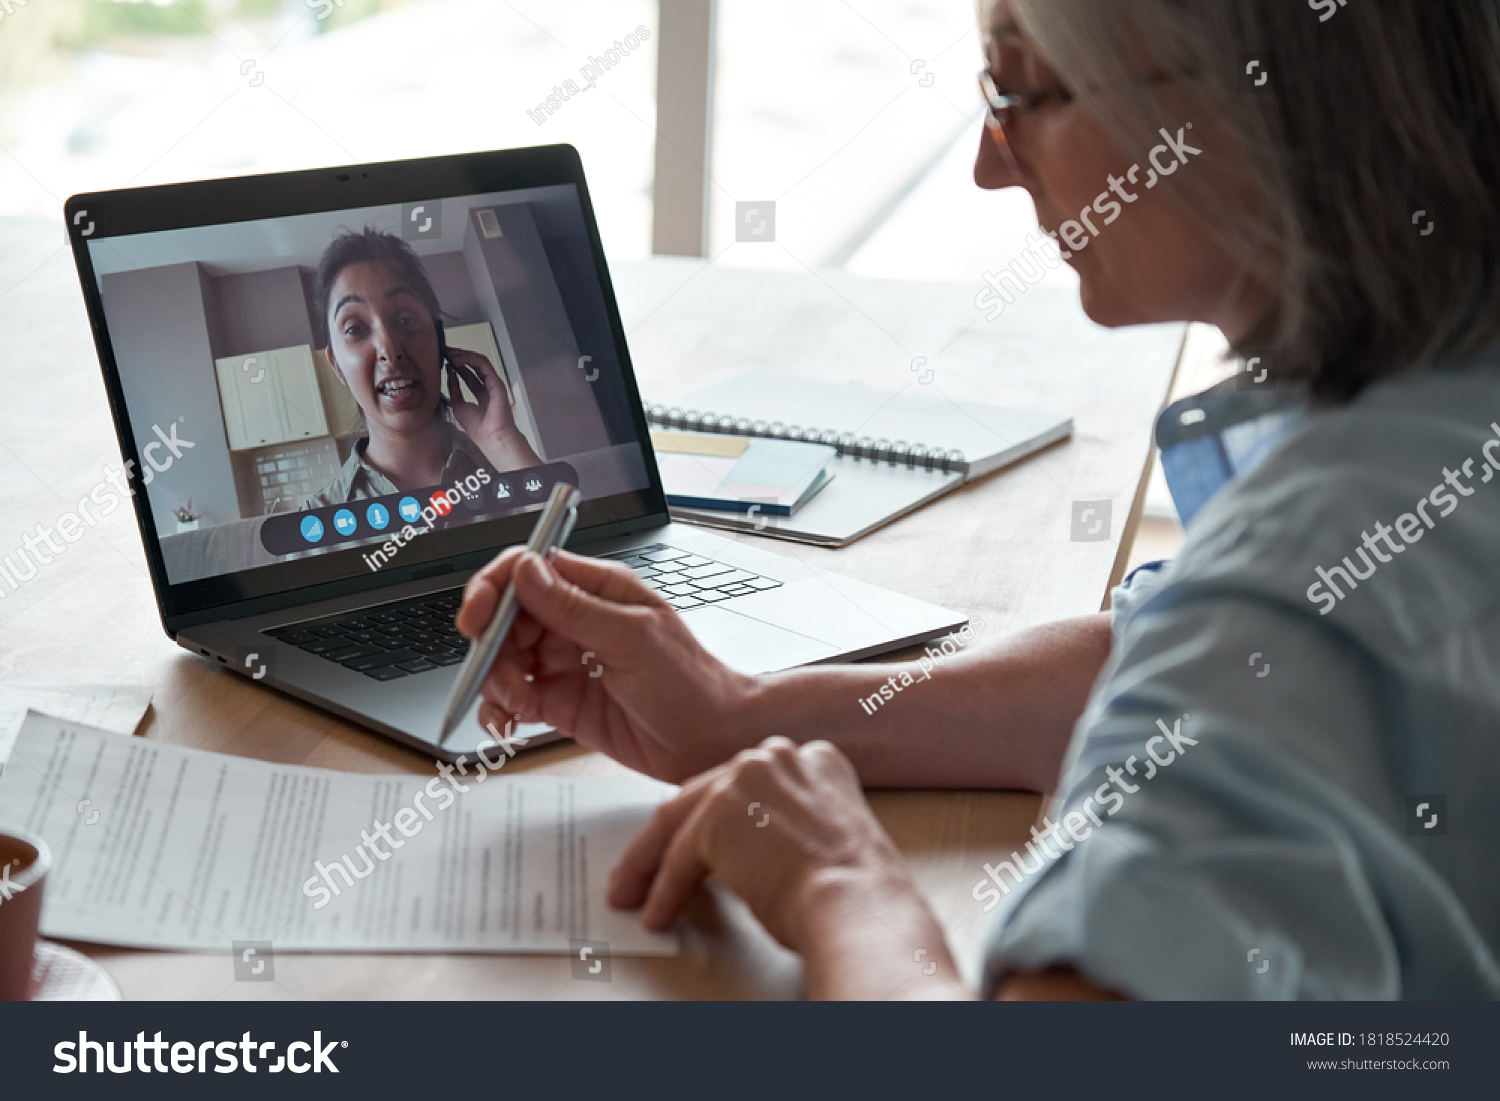 Old hr employer checking indian female job applicant cv resume by video conference call interview on laptop. Senior client reading insurance contract with virtual lawyer advisor at online legal advice #1818524420